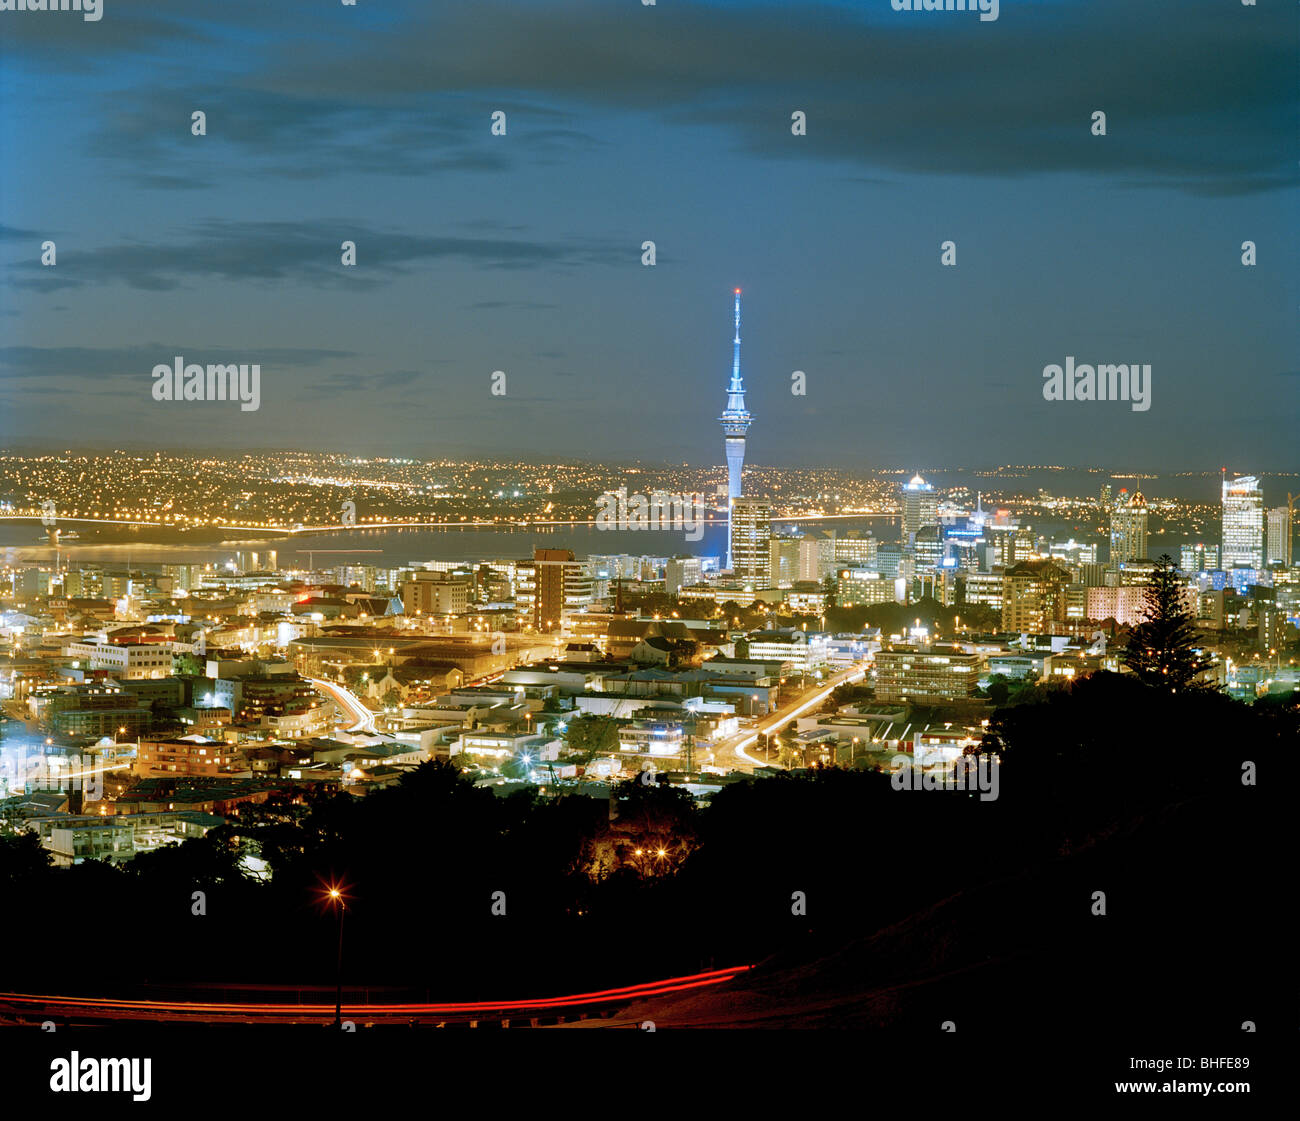 View at the illuminated Central Business District with Sky Tower at night, Auckland, North Island, New Zealand - Stock Image